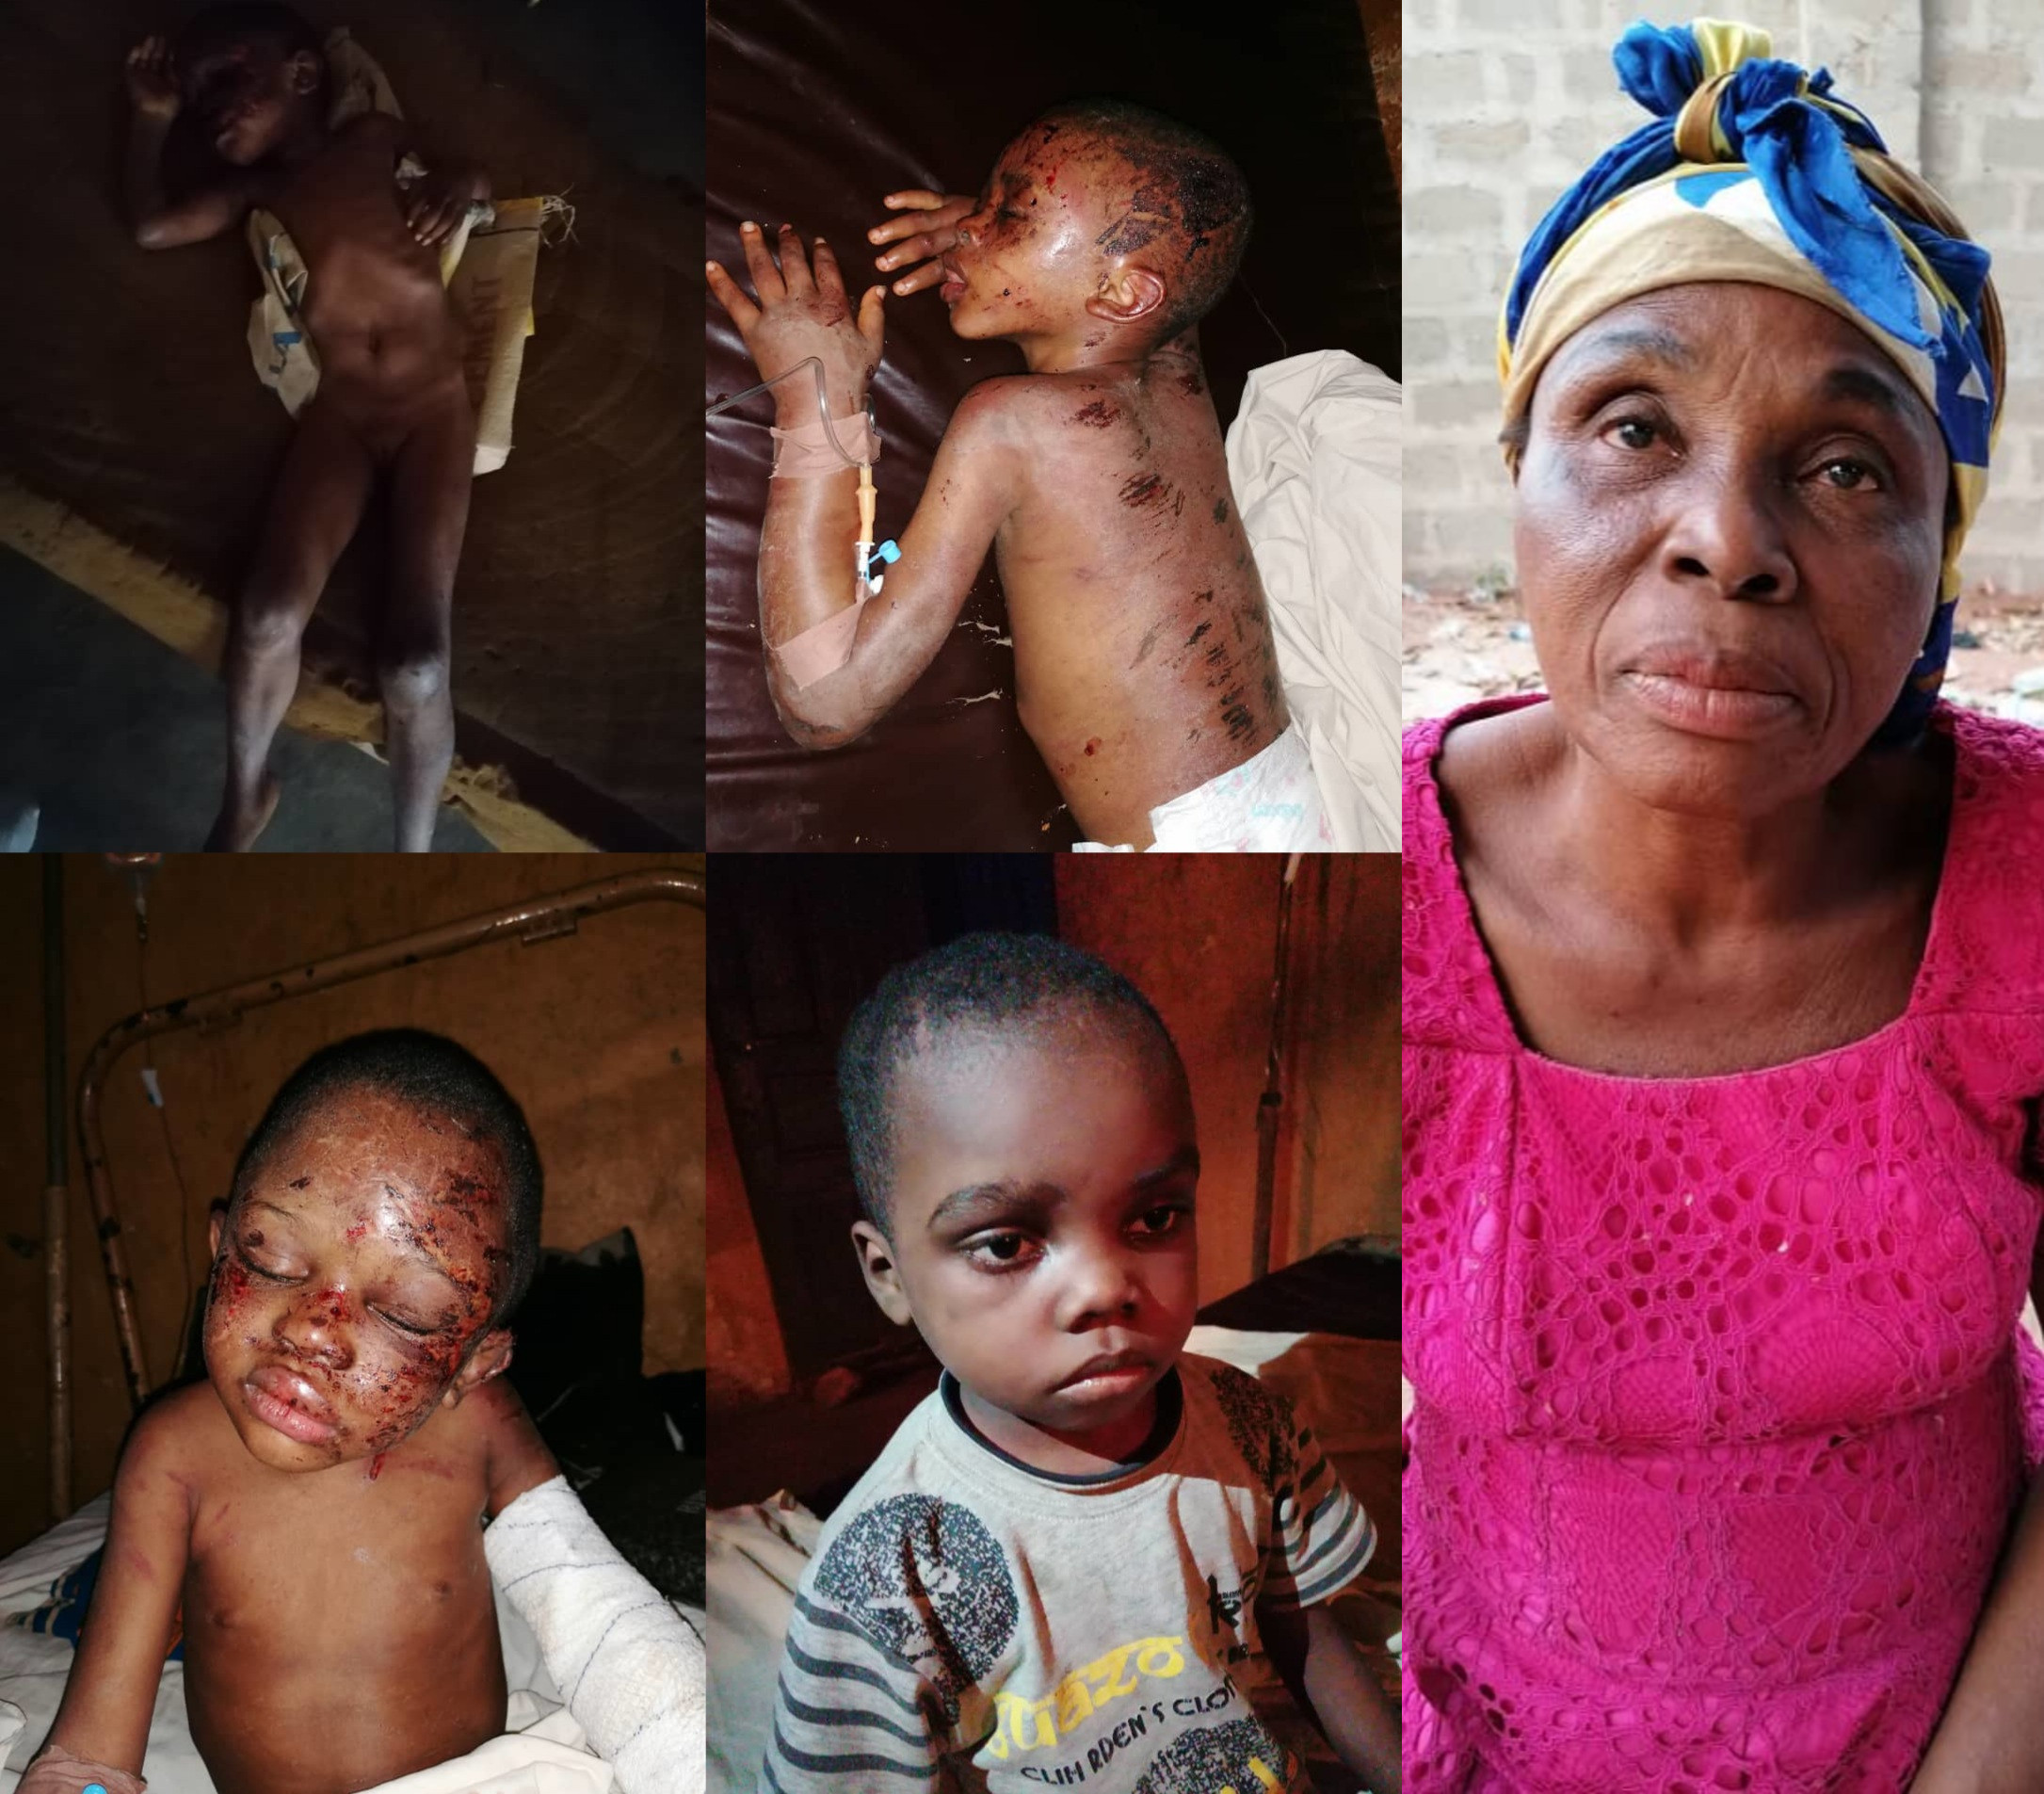 Suspected child trafficker who allegedly sold the bloodied children discovered in Anambra to their captors has been declared wanted by the police (photos)